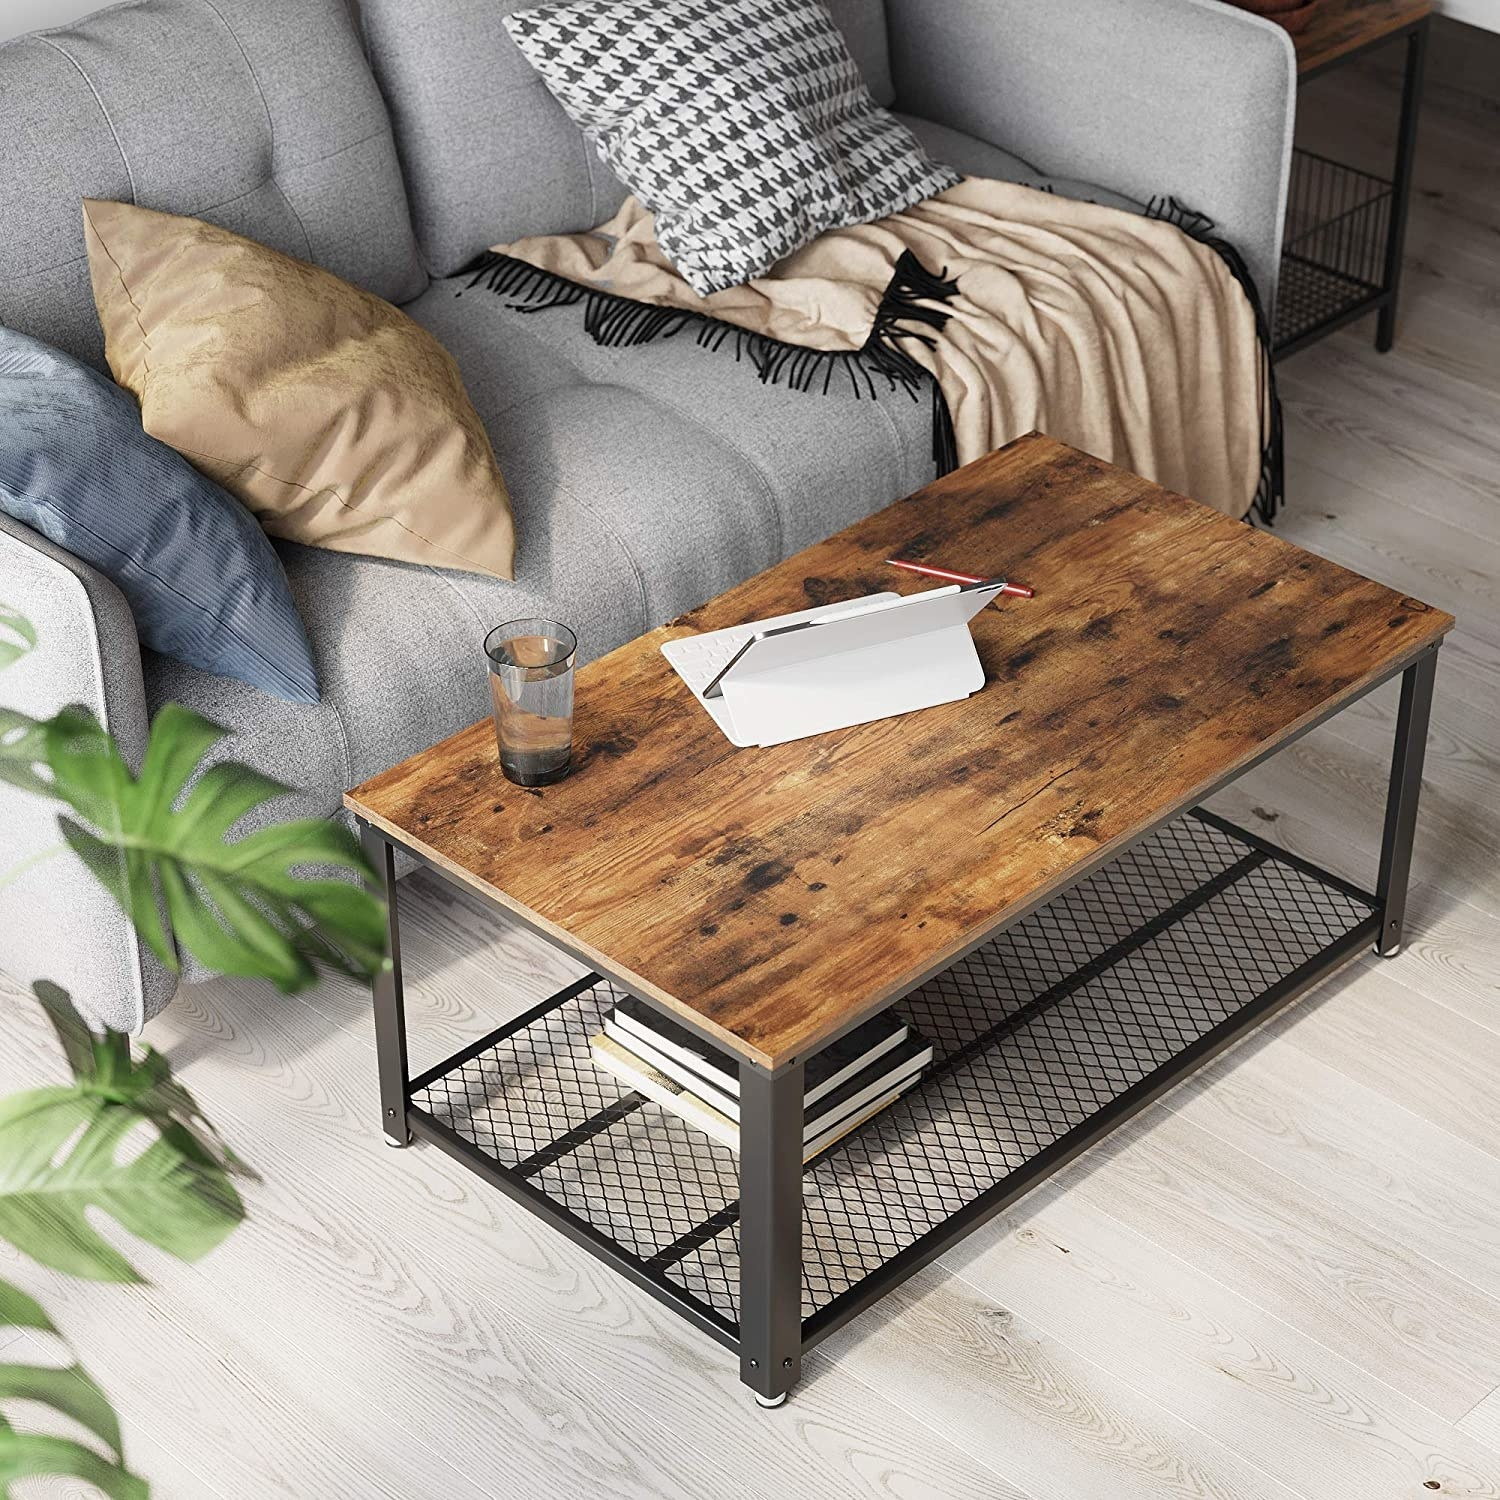 The coffee table in front of a couch with an iPad on it